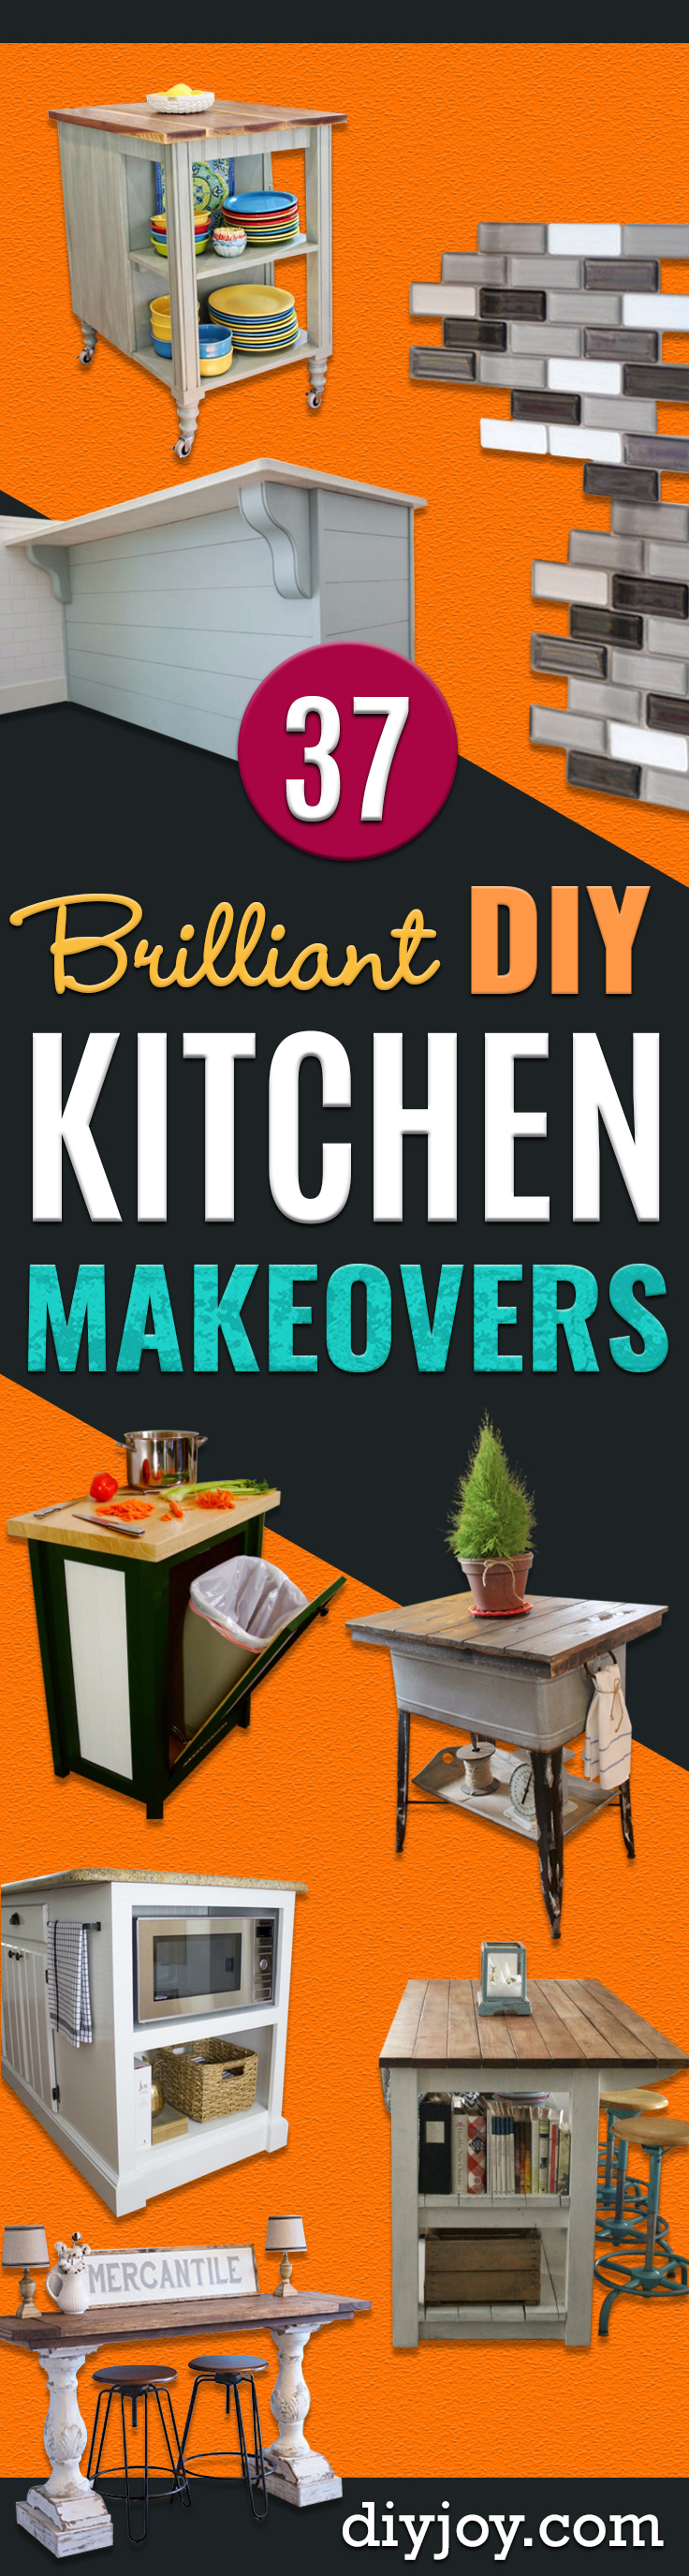 DIY Kitchen Makeover Ideas - Cheap Projects for Kitchens - Home Improvement On A Budget - Cabinets, Counter Tops, Paint Tutorials, Islands and Faux Granite and Step by Step Instructions